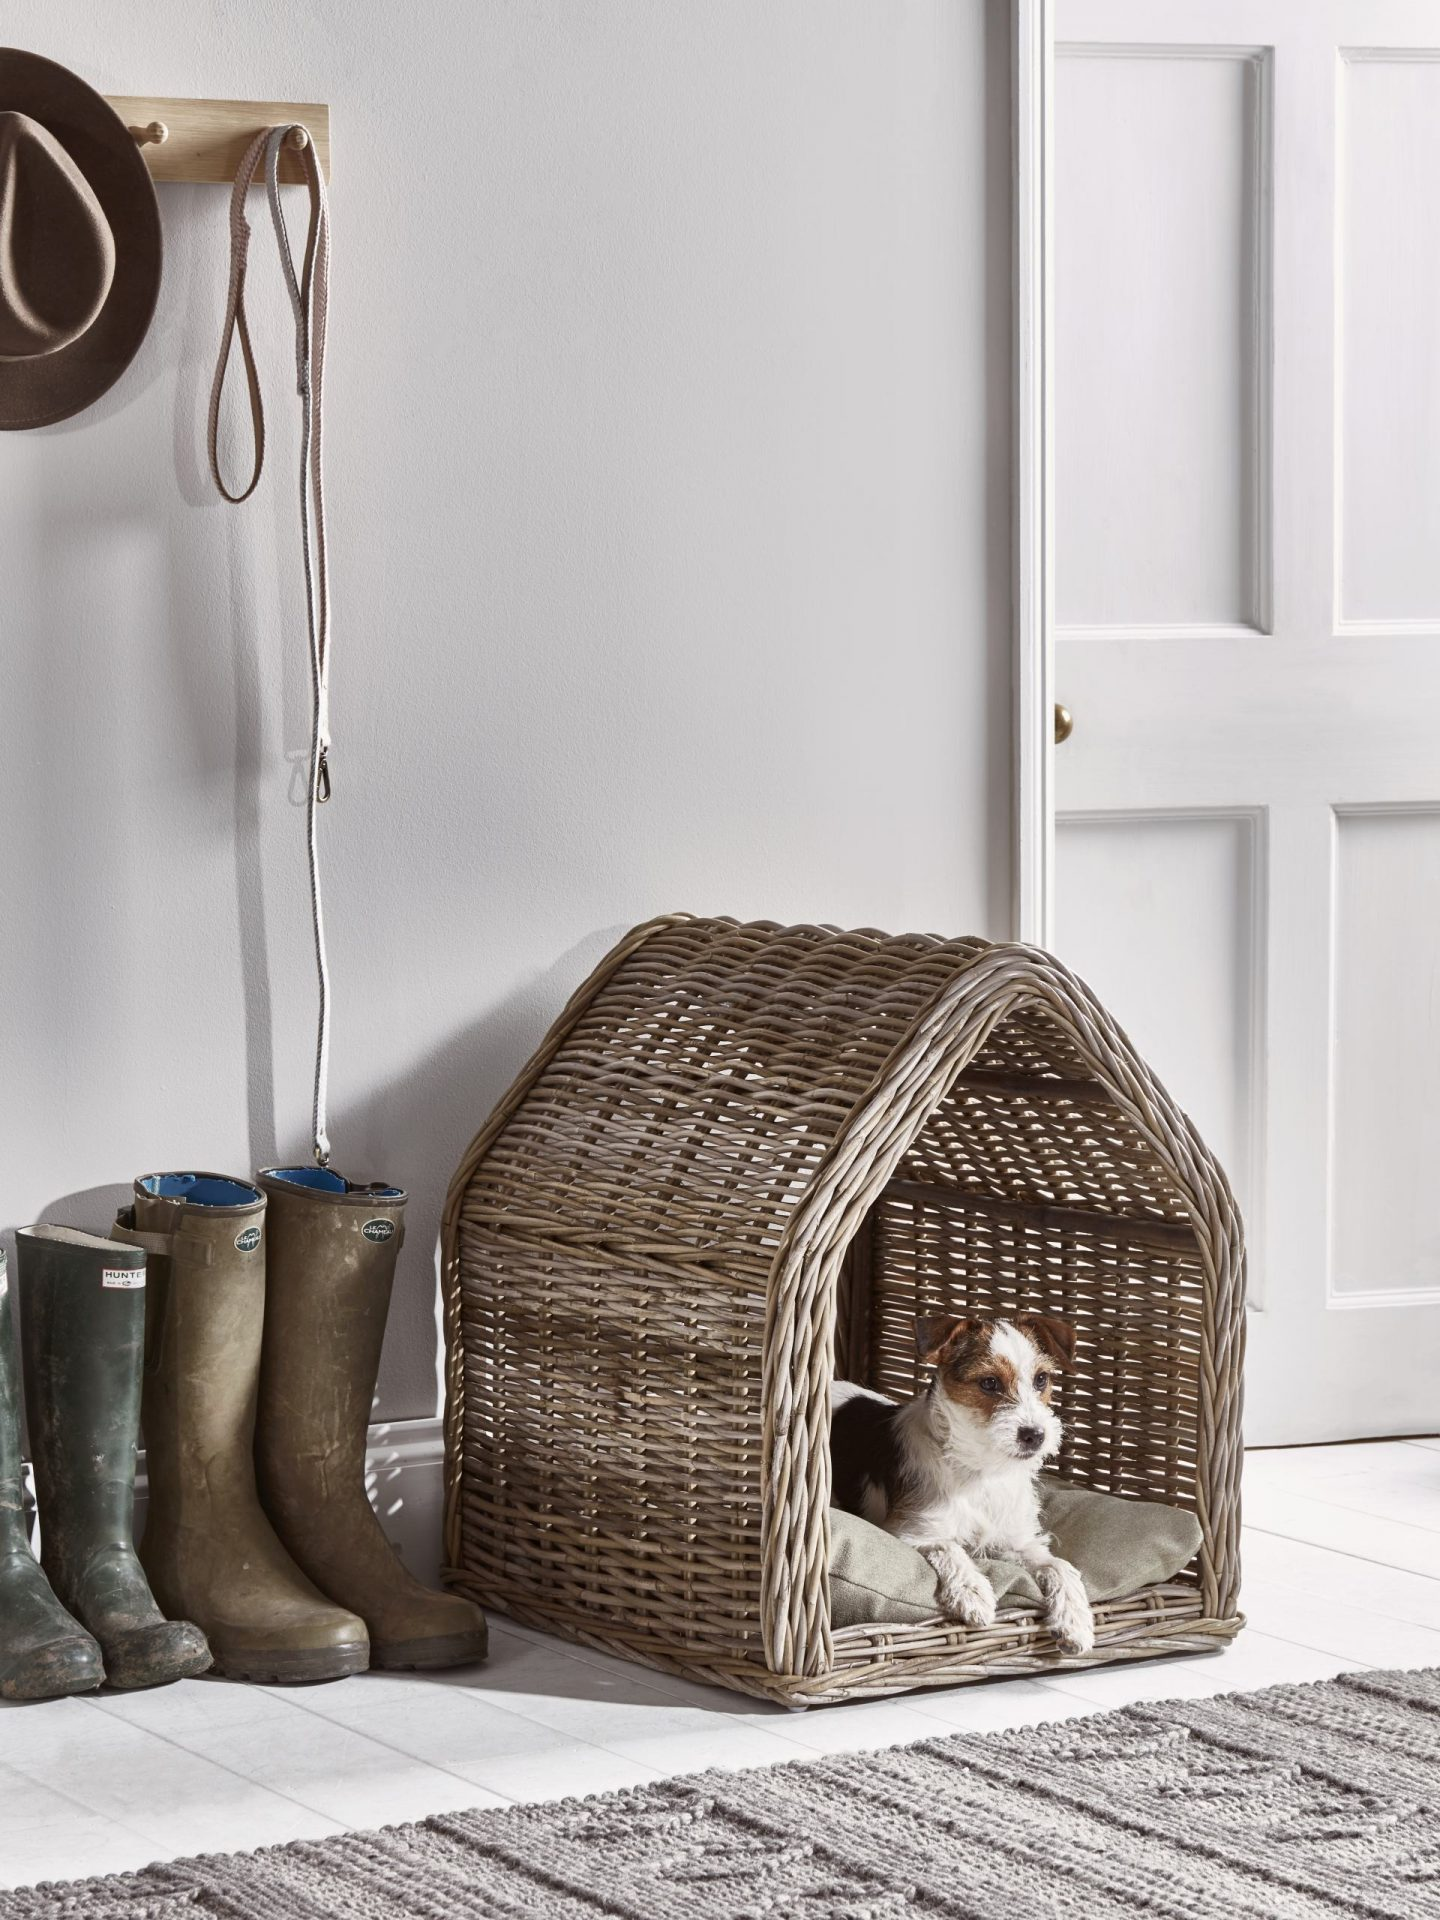 Rattan pet house by cox and cox.